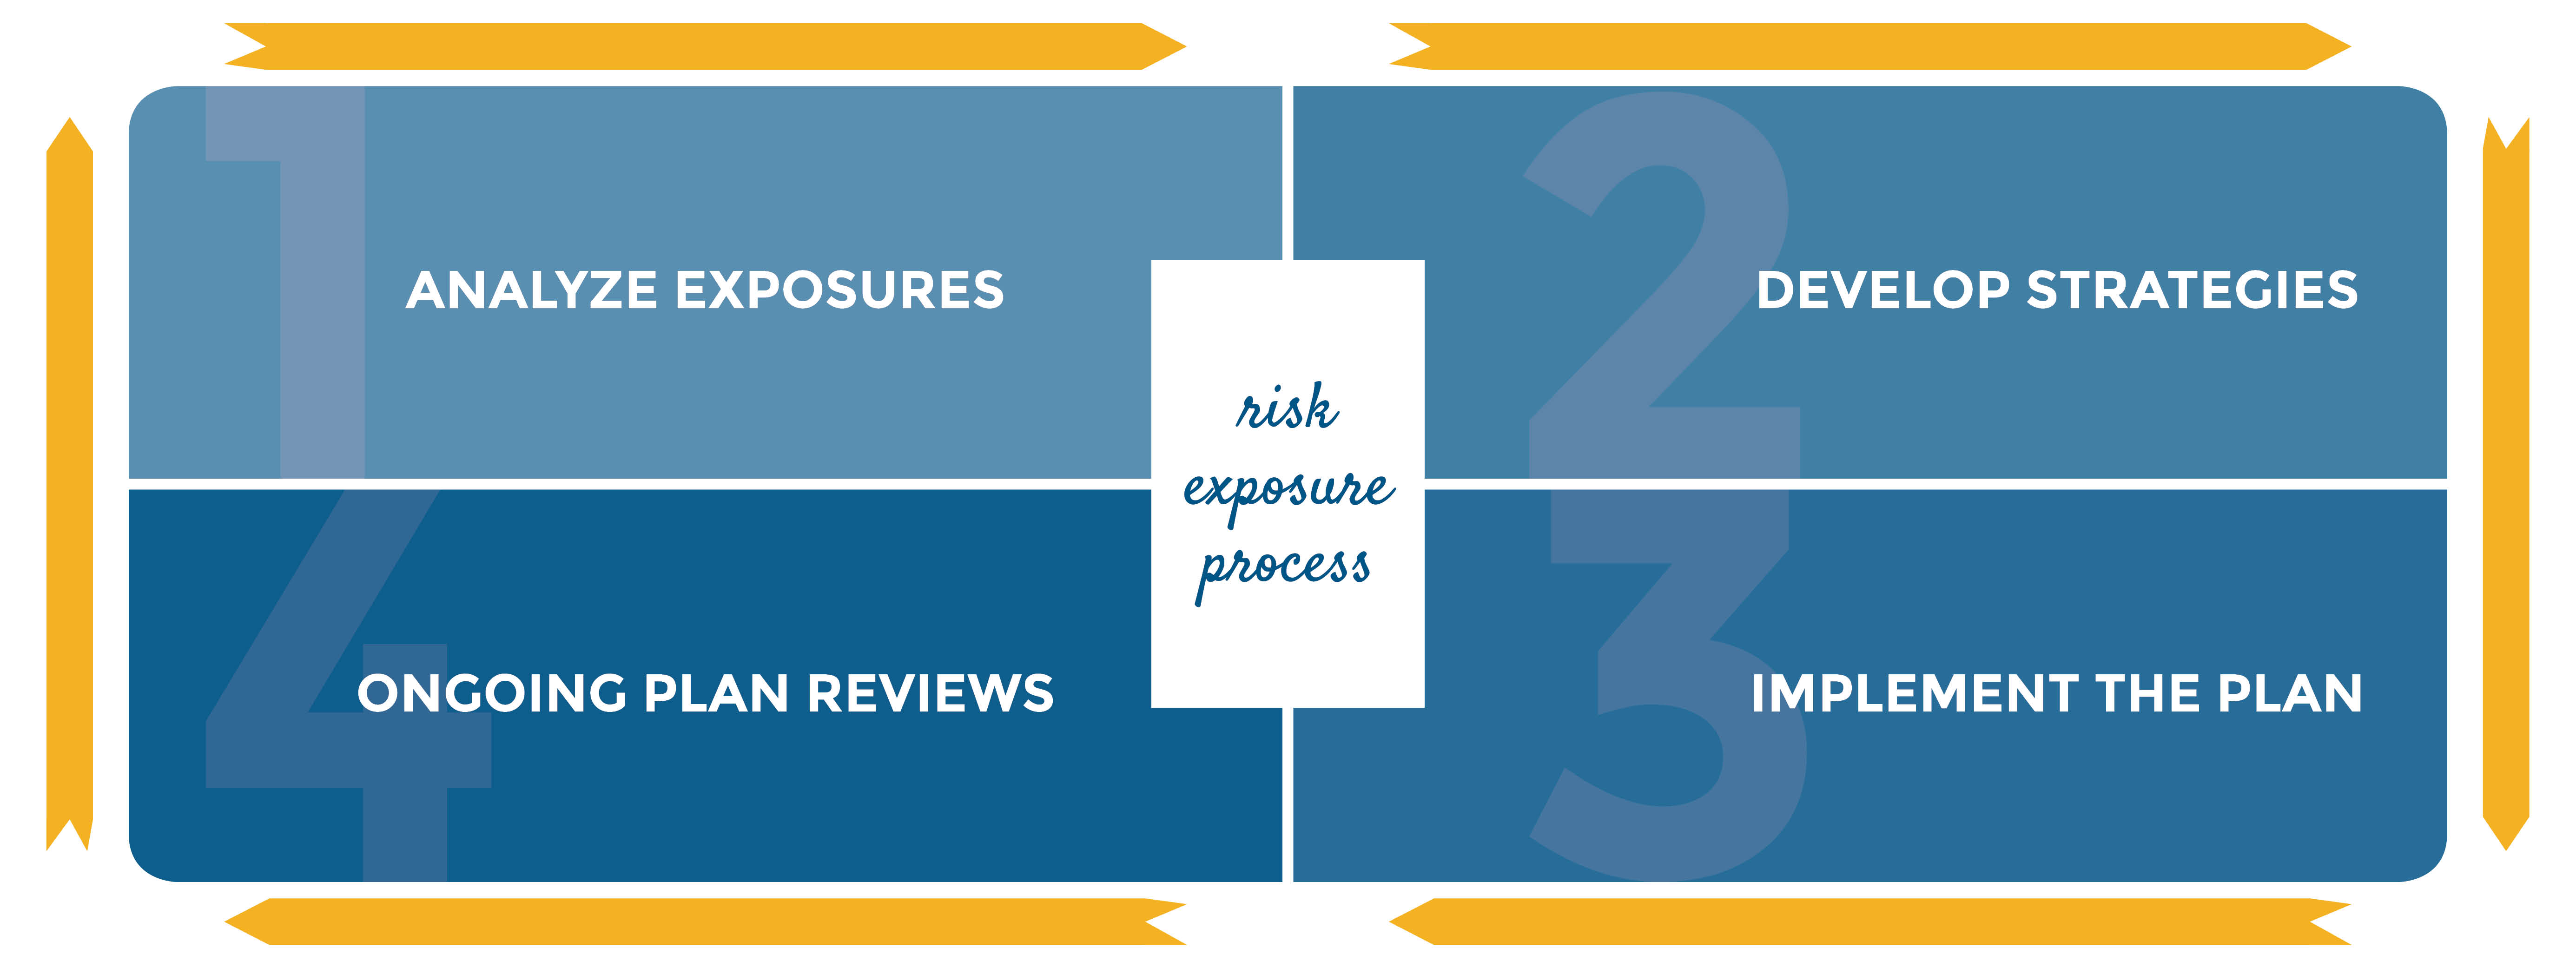 diagram of risk exposure process step 1 analyze exposures step 2 develop strategies step 3 implement the plan step 4 ongoing plan reviews